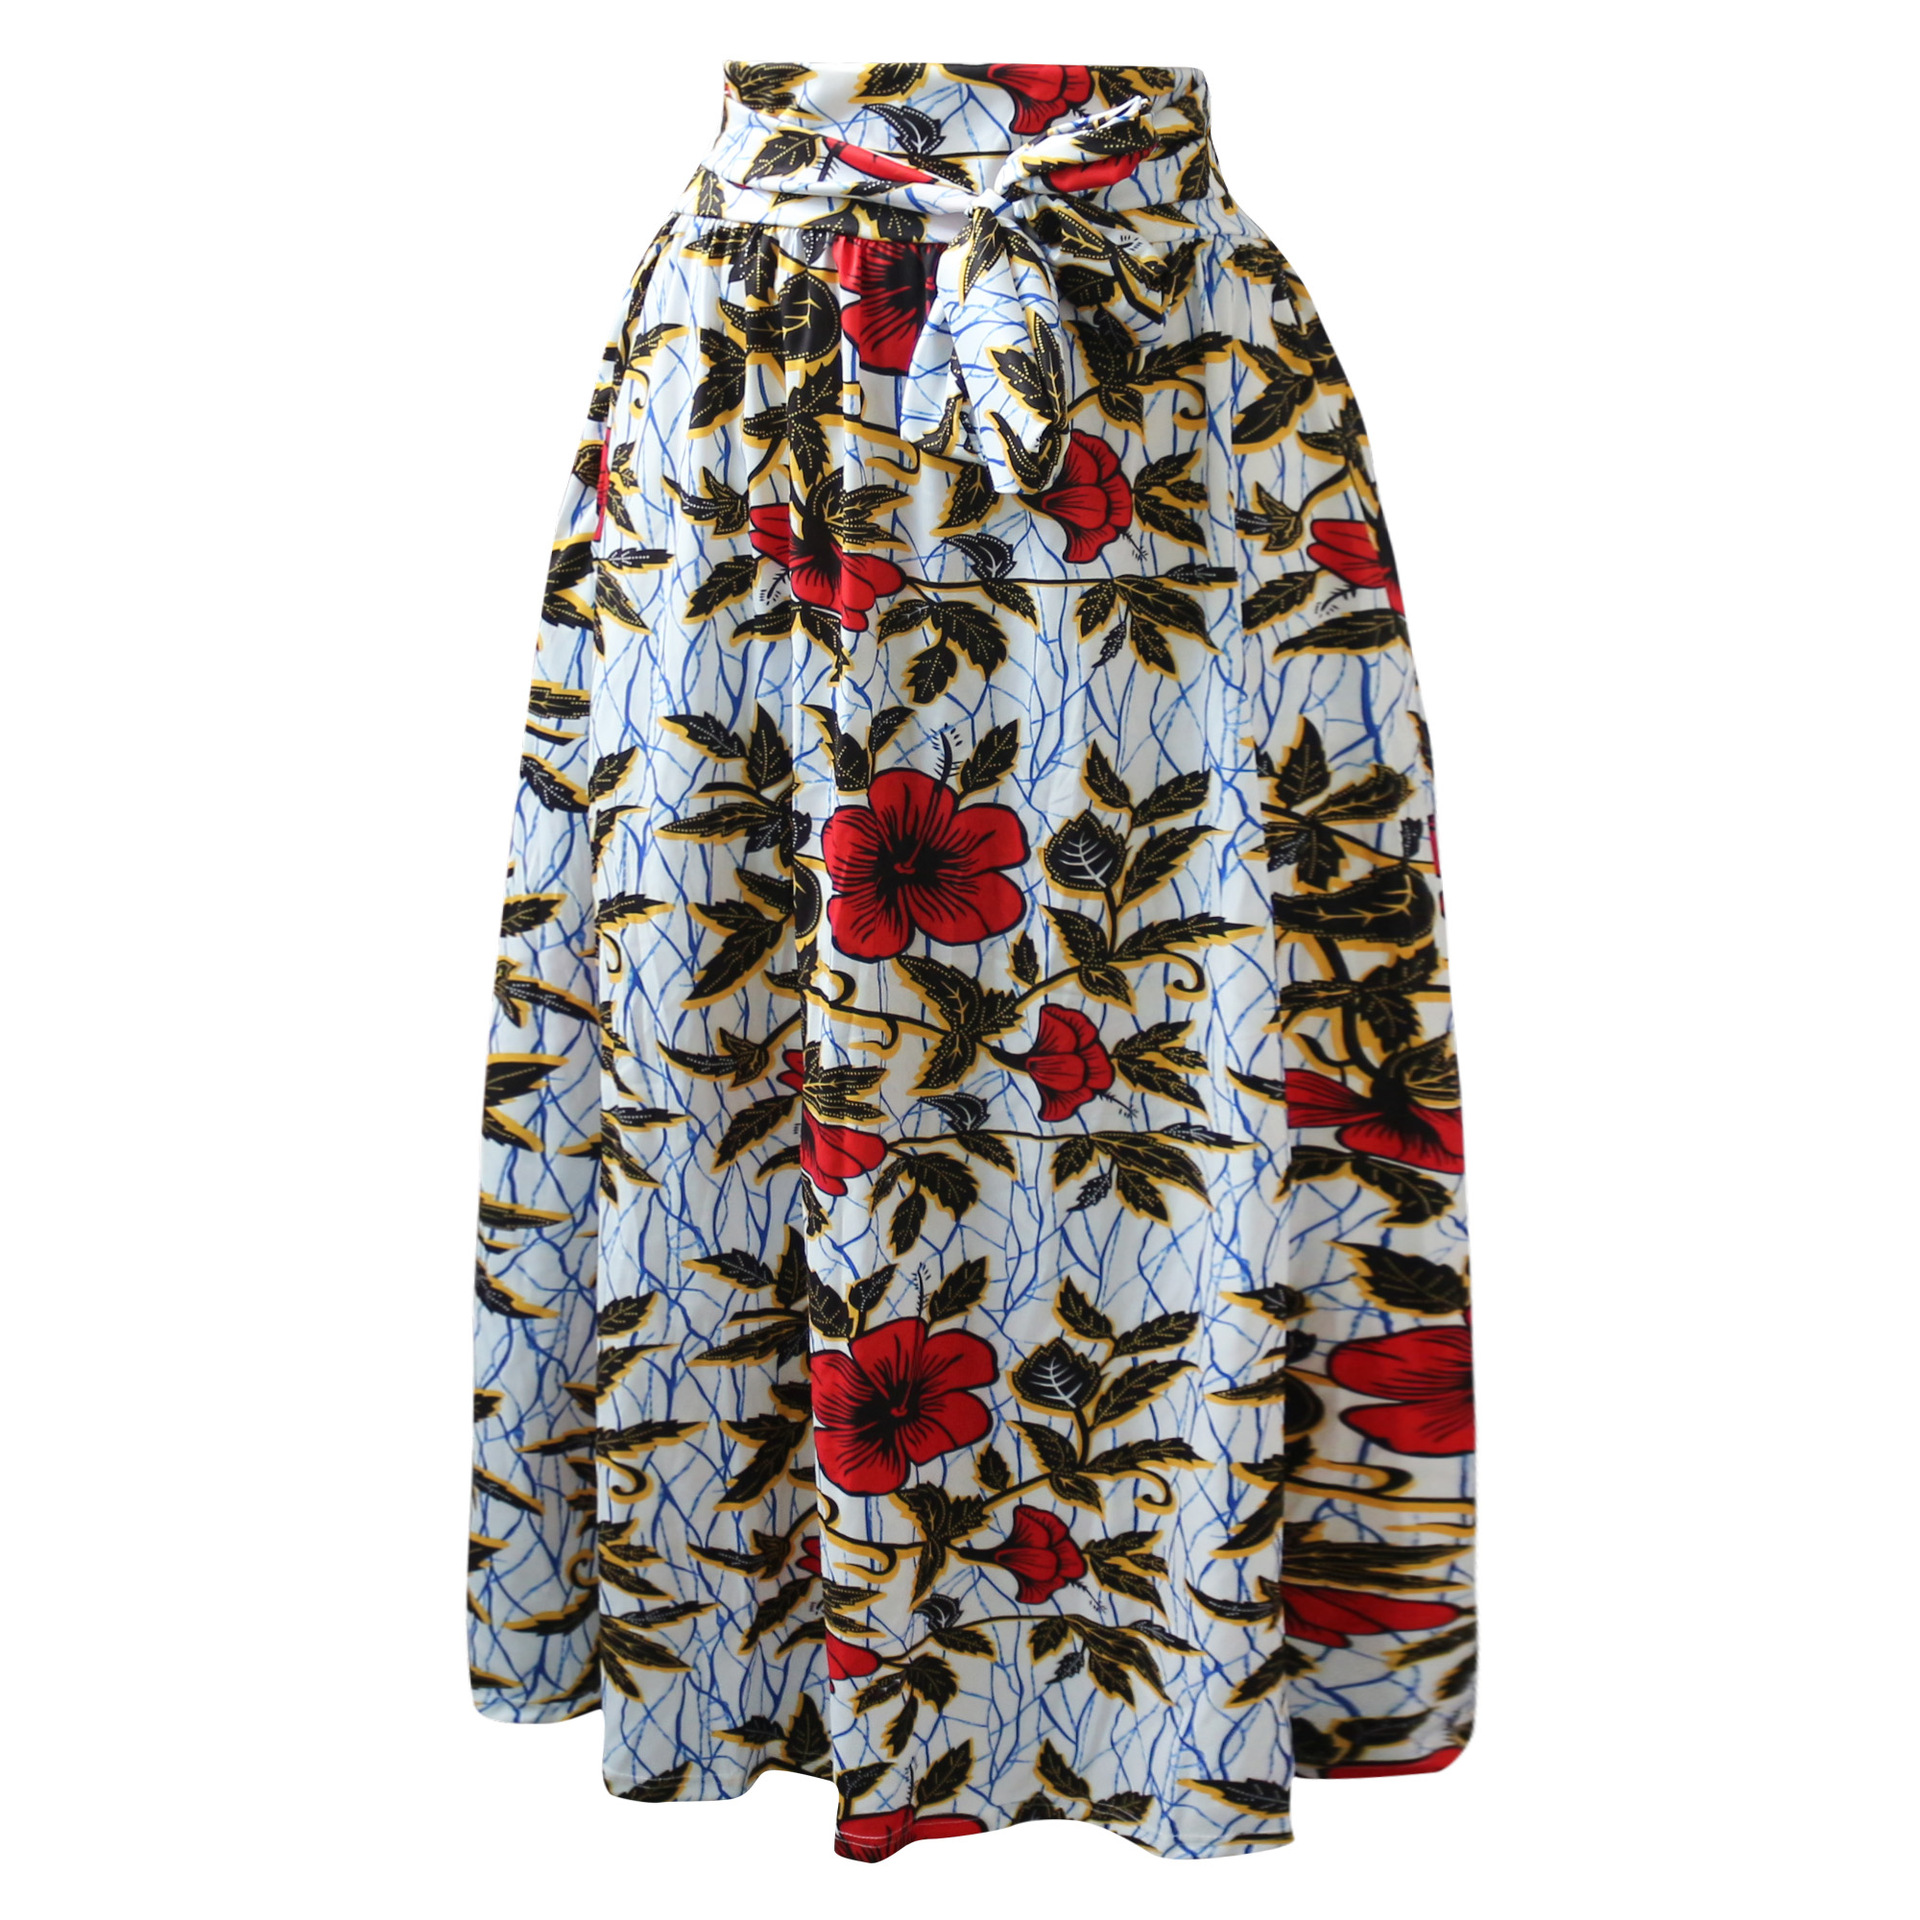 0ff688f41b53b US $19.38 49% OFF|Plus Size Africa Clothing 5XL Indonesia Ankara Indian  African Pattern Print Skirt For Women Fashion Bandage Skirts With Belt-in  ...